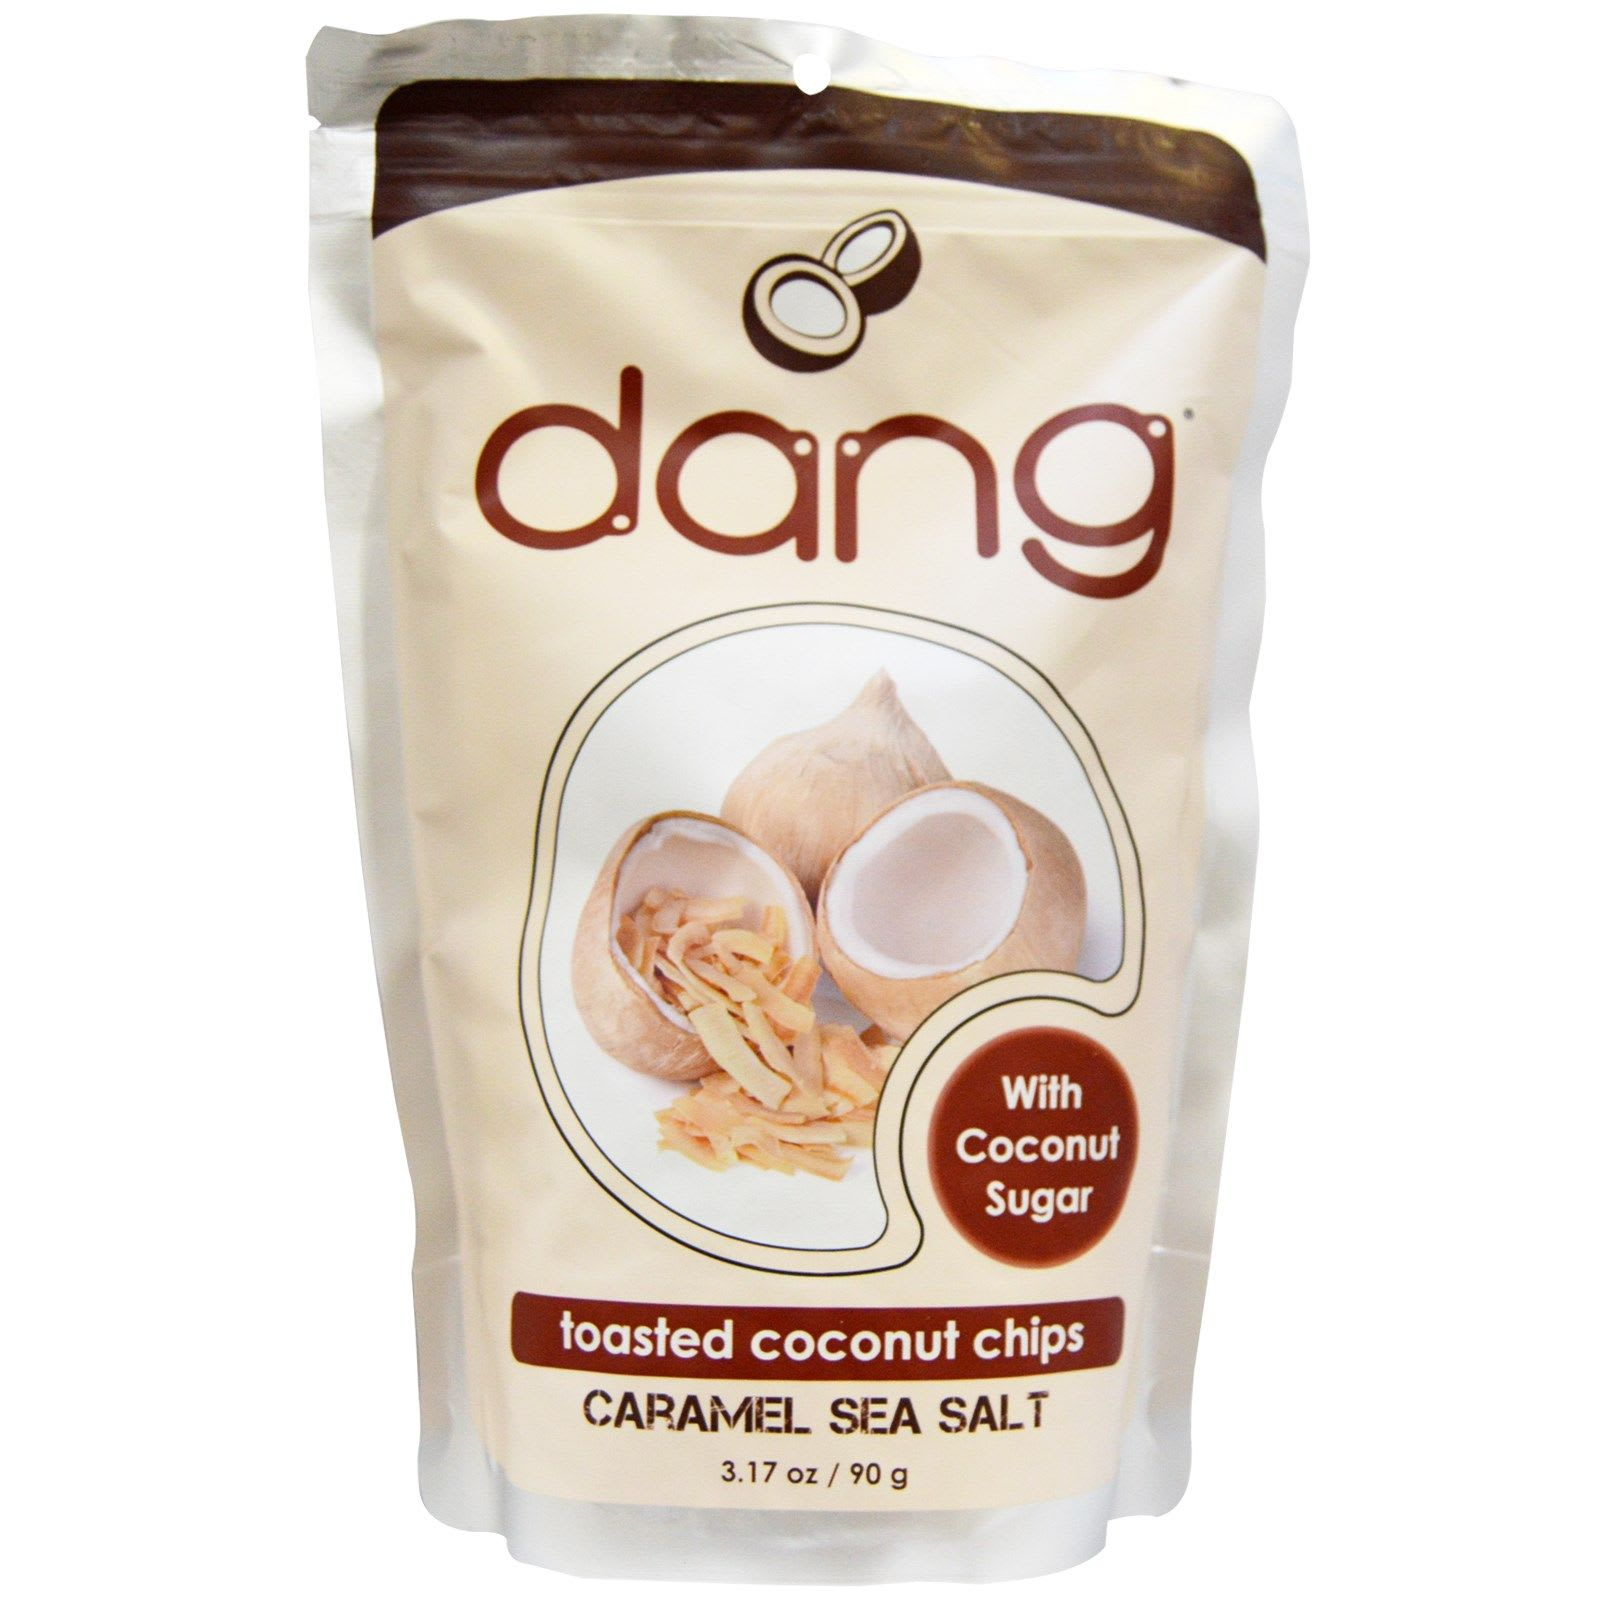 Dang Toasted Caramel Coconut Chips